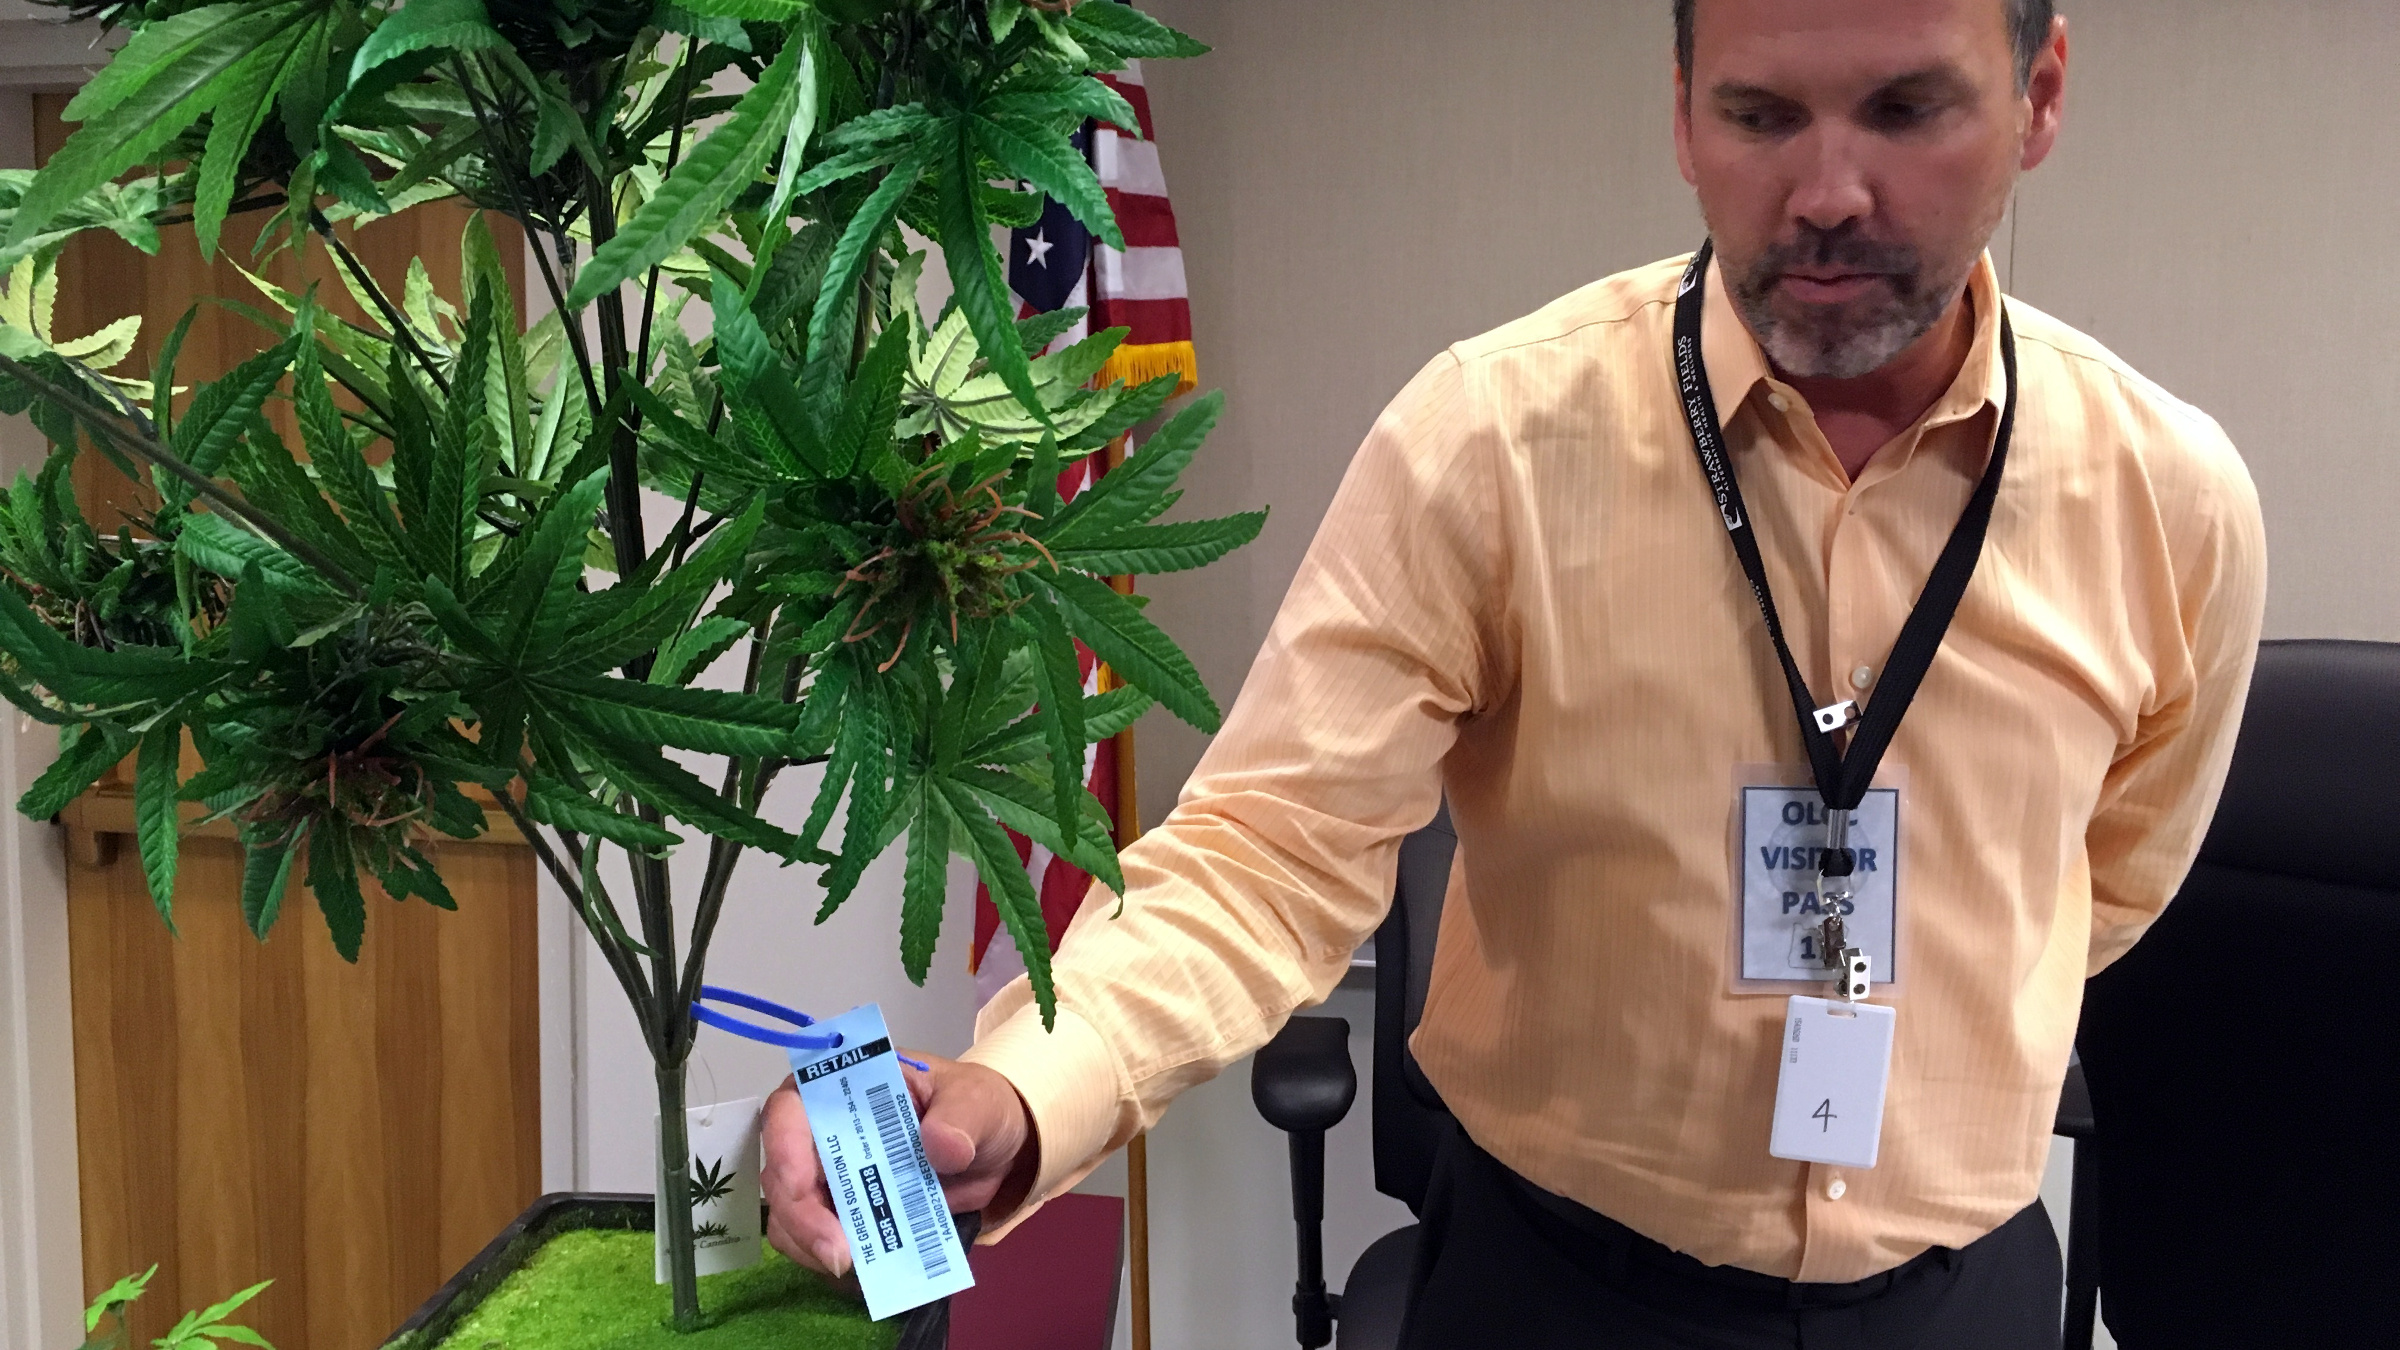 CORRECTS SPELLING OF COMPANY NAME TO METRC INSTEAD OF METRICS - In this Wednesday, May 15, 2016 photo, Todd Golden, associate director of metrc, displays a sample tag which can be scanned by radio-frequency identification devices, on an artificial marijuana plant at the Oregon Liquor Commission offices in Portland, Ore. After months of public hearings with pot growers, lawmen, public health officials and others, the Oregon Liquor Control Commission is racing to finalize recreational marijuana regulations and issue licenses to hundreds of businesses within a few months. ()